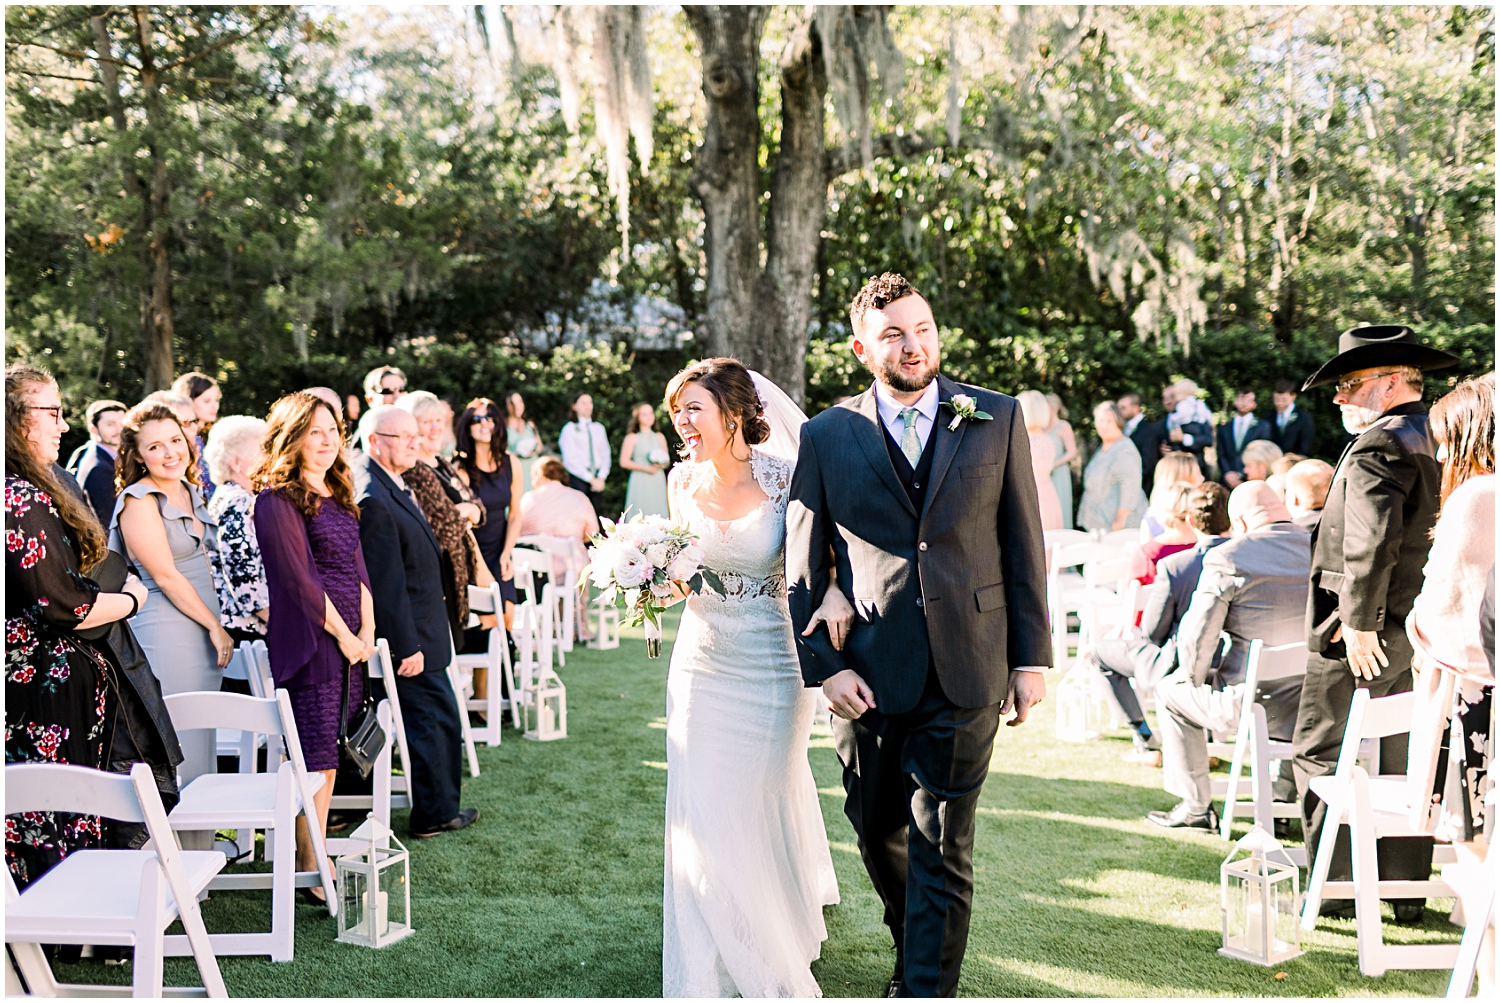 Wrightsville Manor Wedding Venue, Downtown Wilmington NC Wedding_Erin L. Taylor Photography_0015.jpg